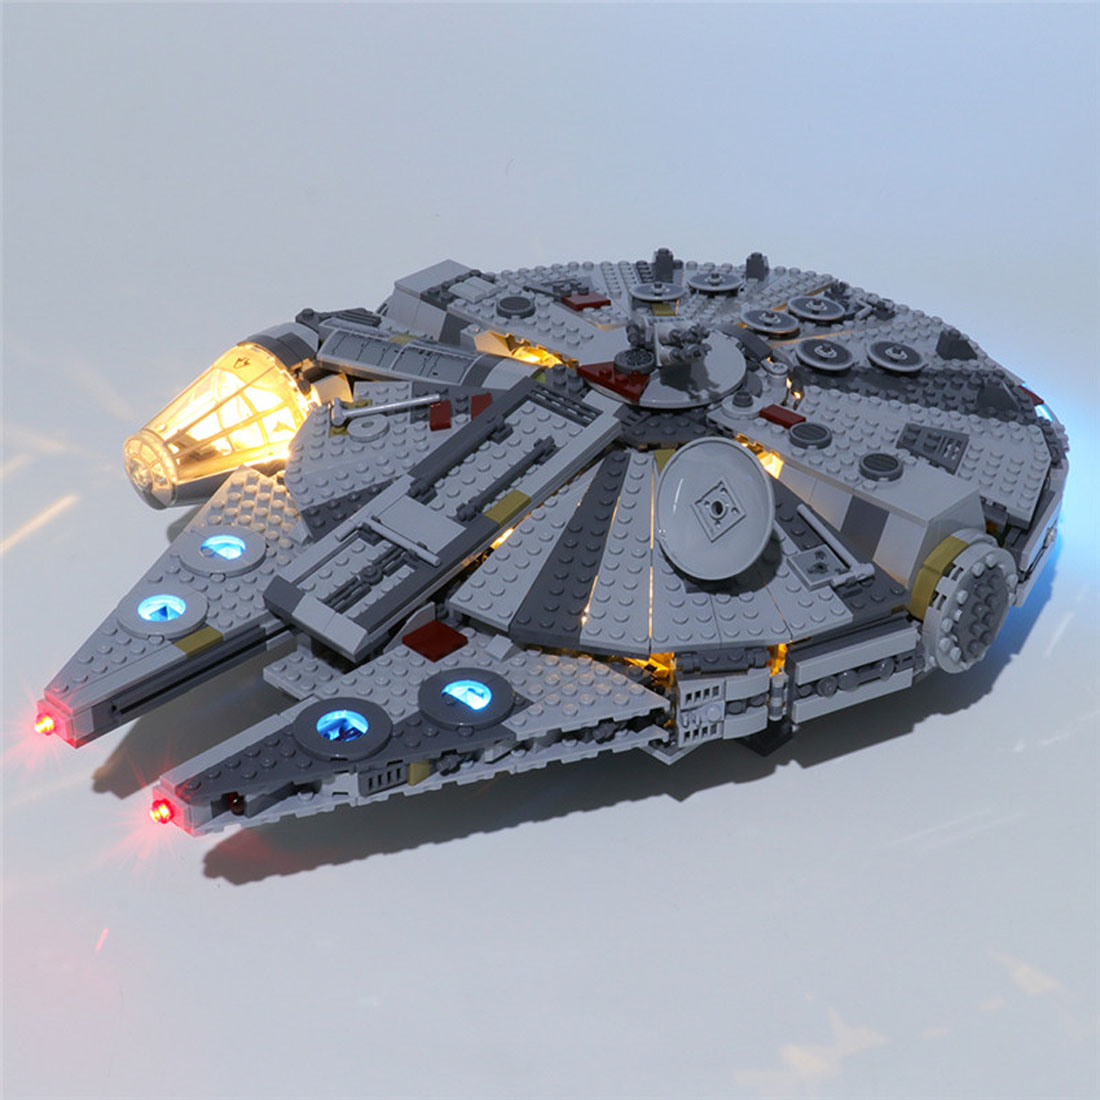 Hot Usb Powered Building Blocks Led Lighting Kit For Star Wars The Rise Of Skywalker Millennium Falcon 75257 Led Only No Kit Aliexpress